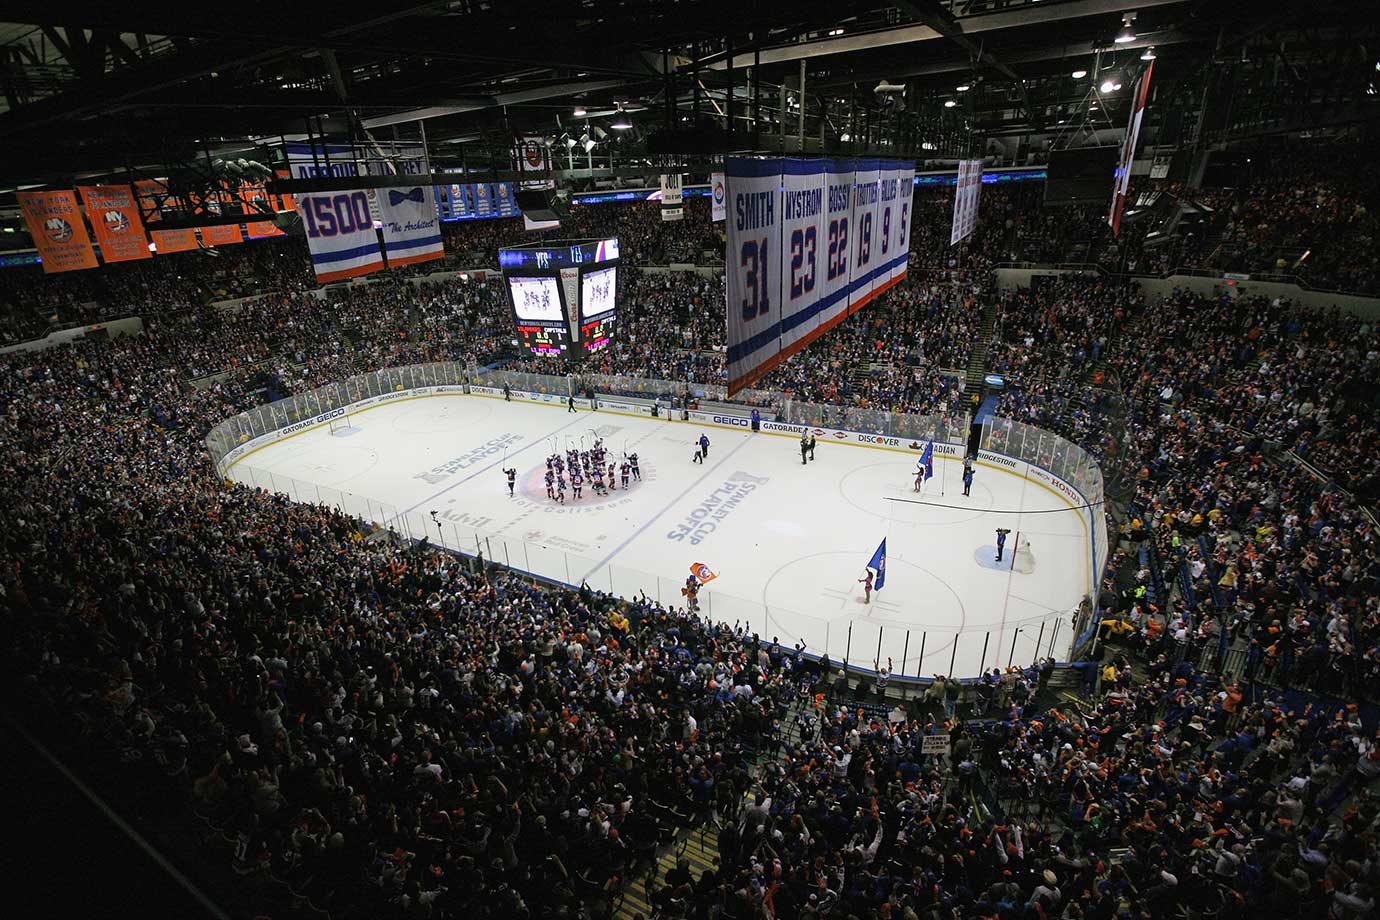 After more than 40 years and four Stanley Cup championships, the Islanders refused to give up Fort Neverlose, the only home they'd ever had, without a fight. John Tavares, Nikolay Kulemin and Cal Clutterbuck scored as New York knocked off the Capitals, 3-1, in a nasty, physical contest that extended their playoff series to a decisive Game 7 and sent the Old Barn off in fitting fashion before the team moved to new digs in Brooklyn.